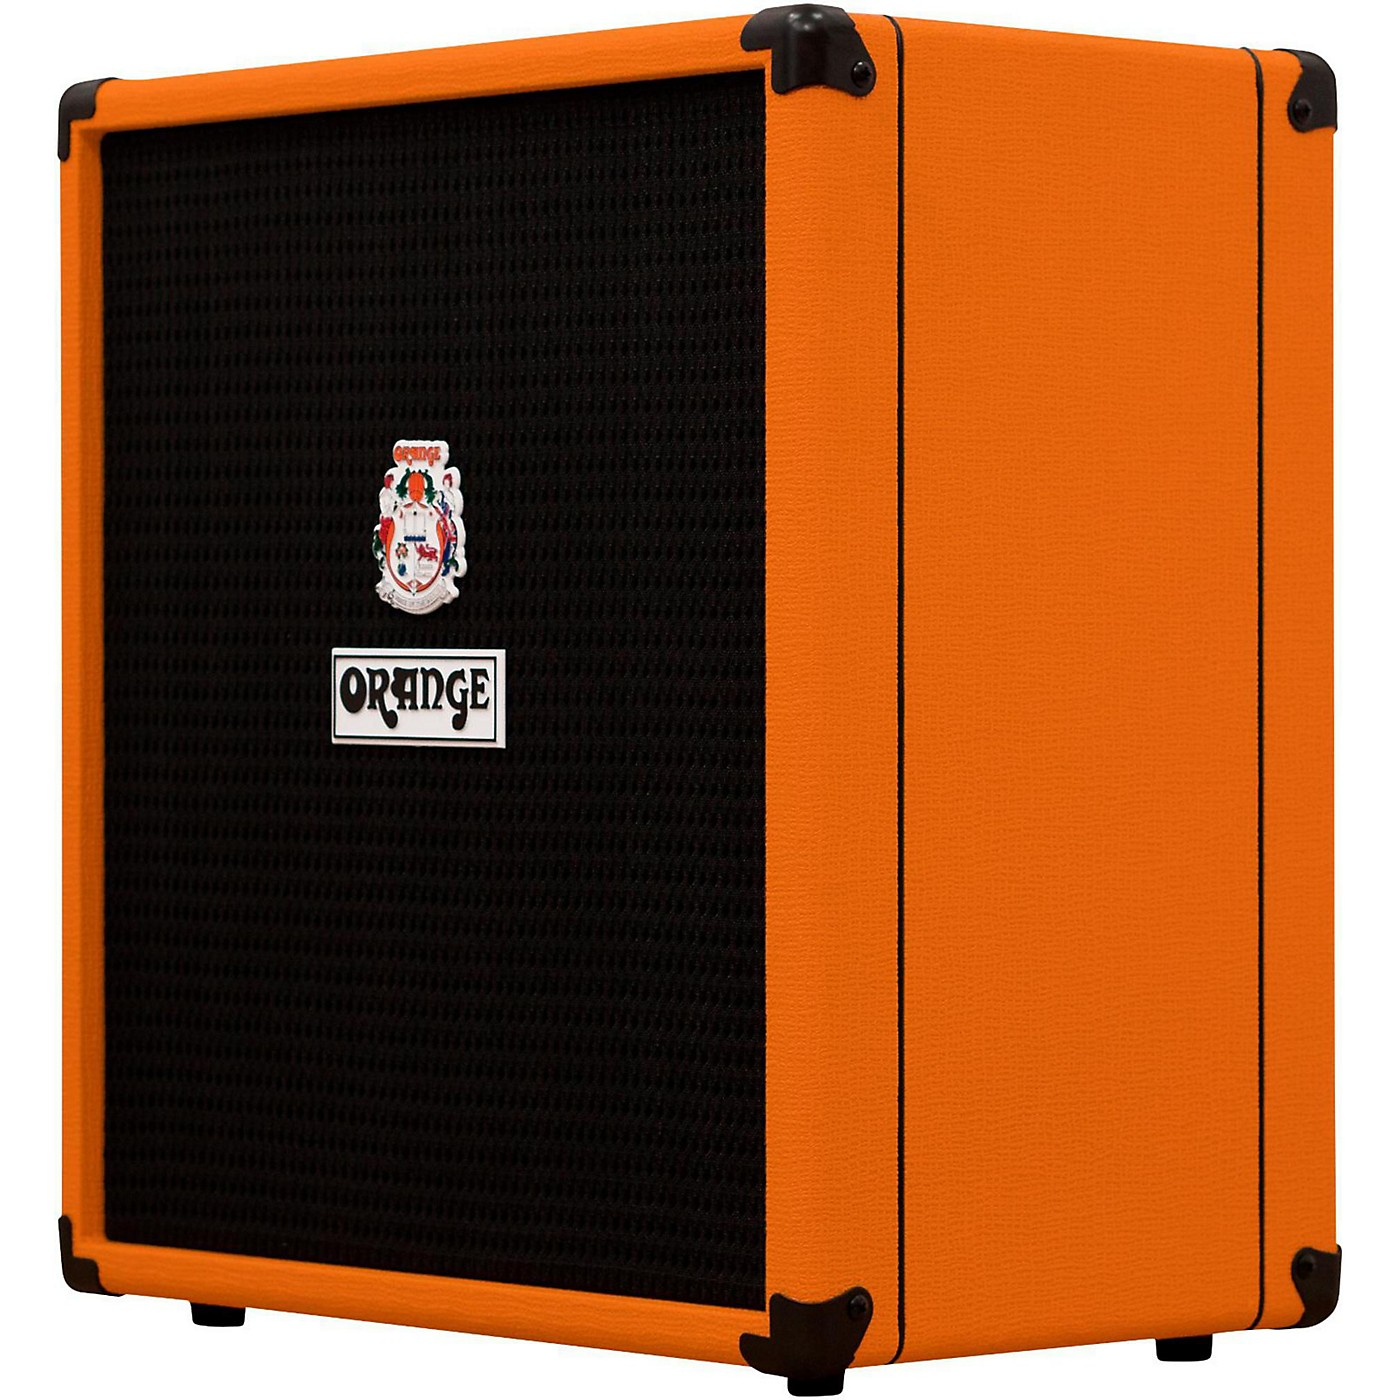 Orange Amplifiers Crush Bass 50 50W 1x12 Bass Combo Amplifier thumbnail